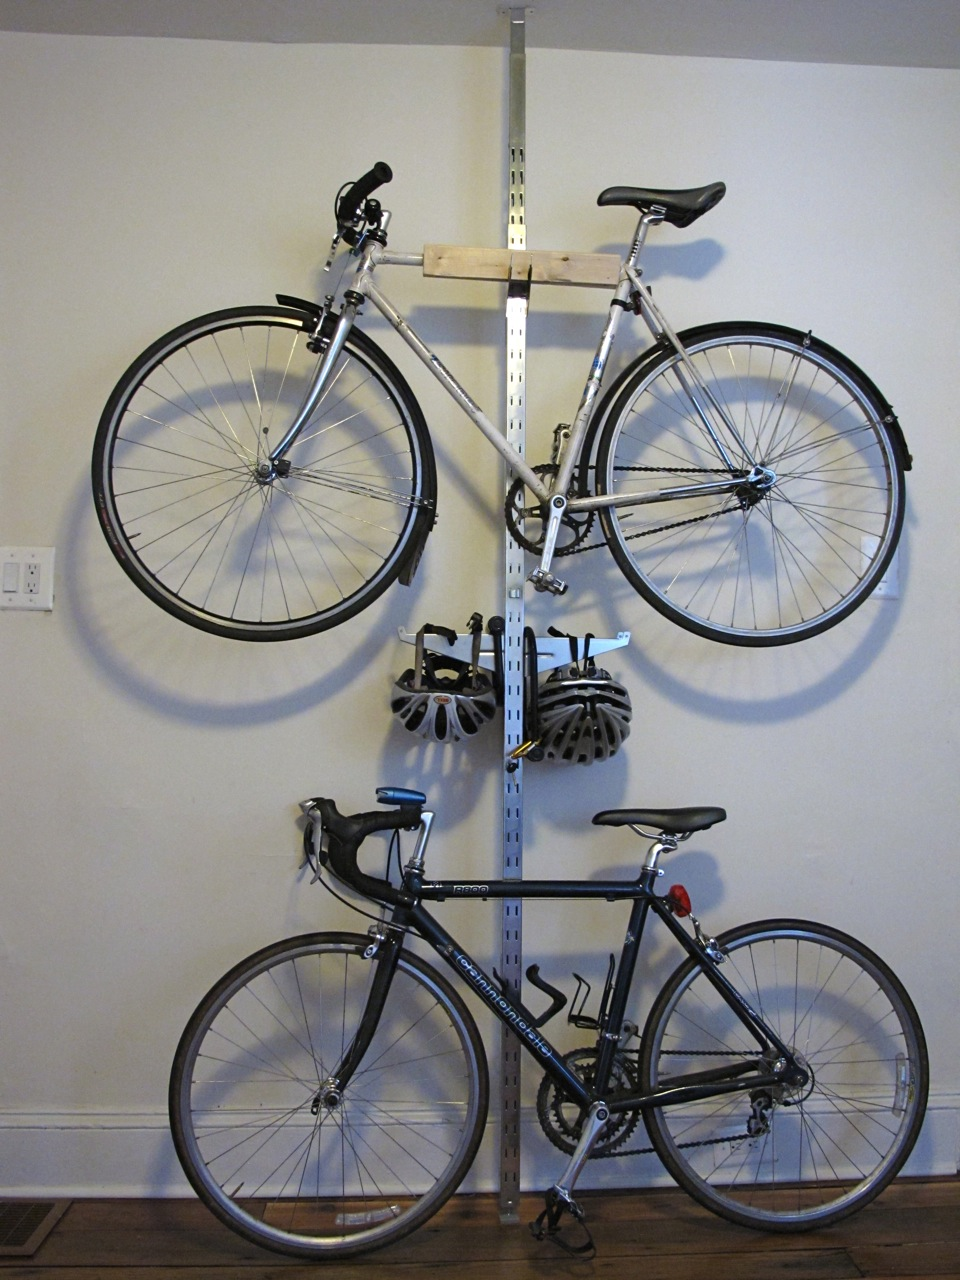 ikea hack diy bike storage man made diy crafts for